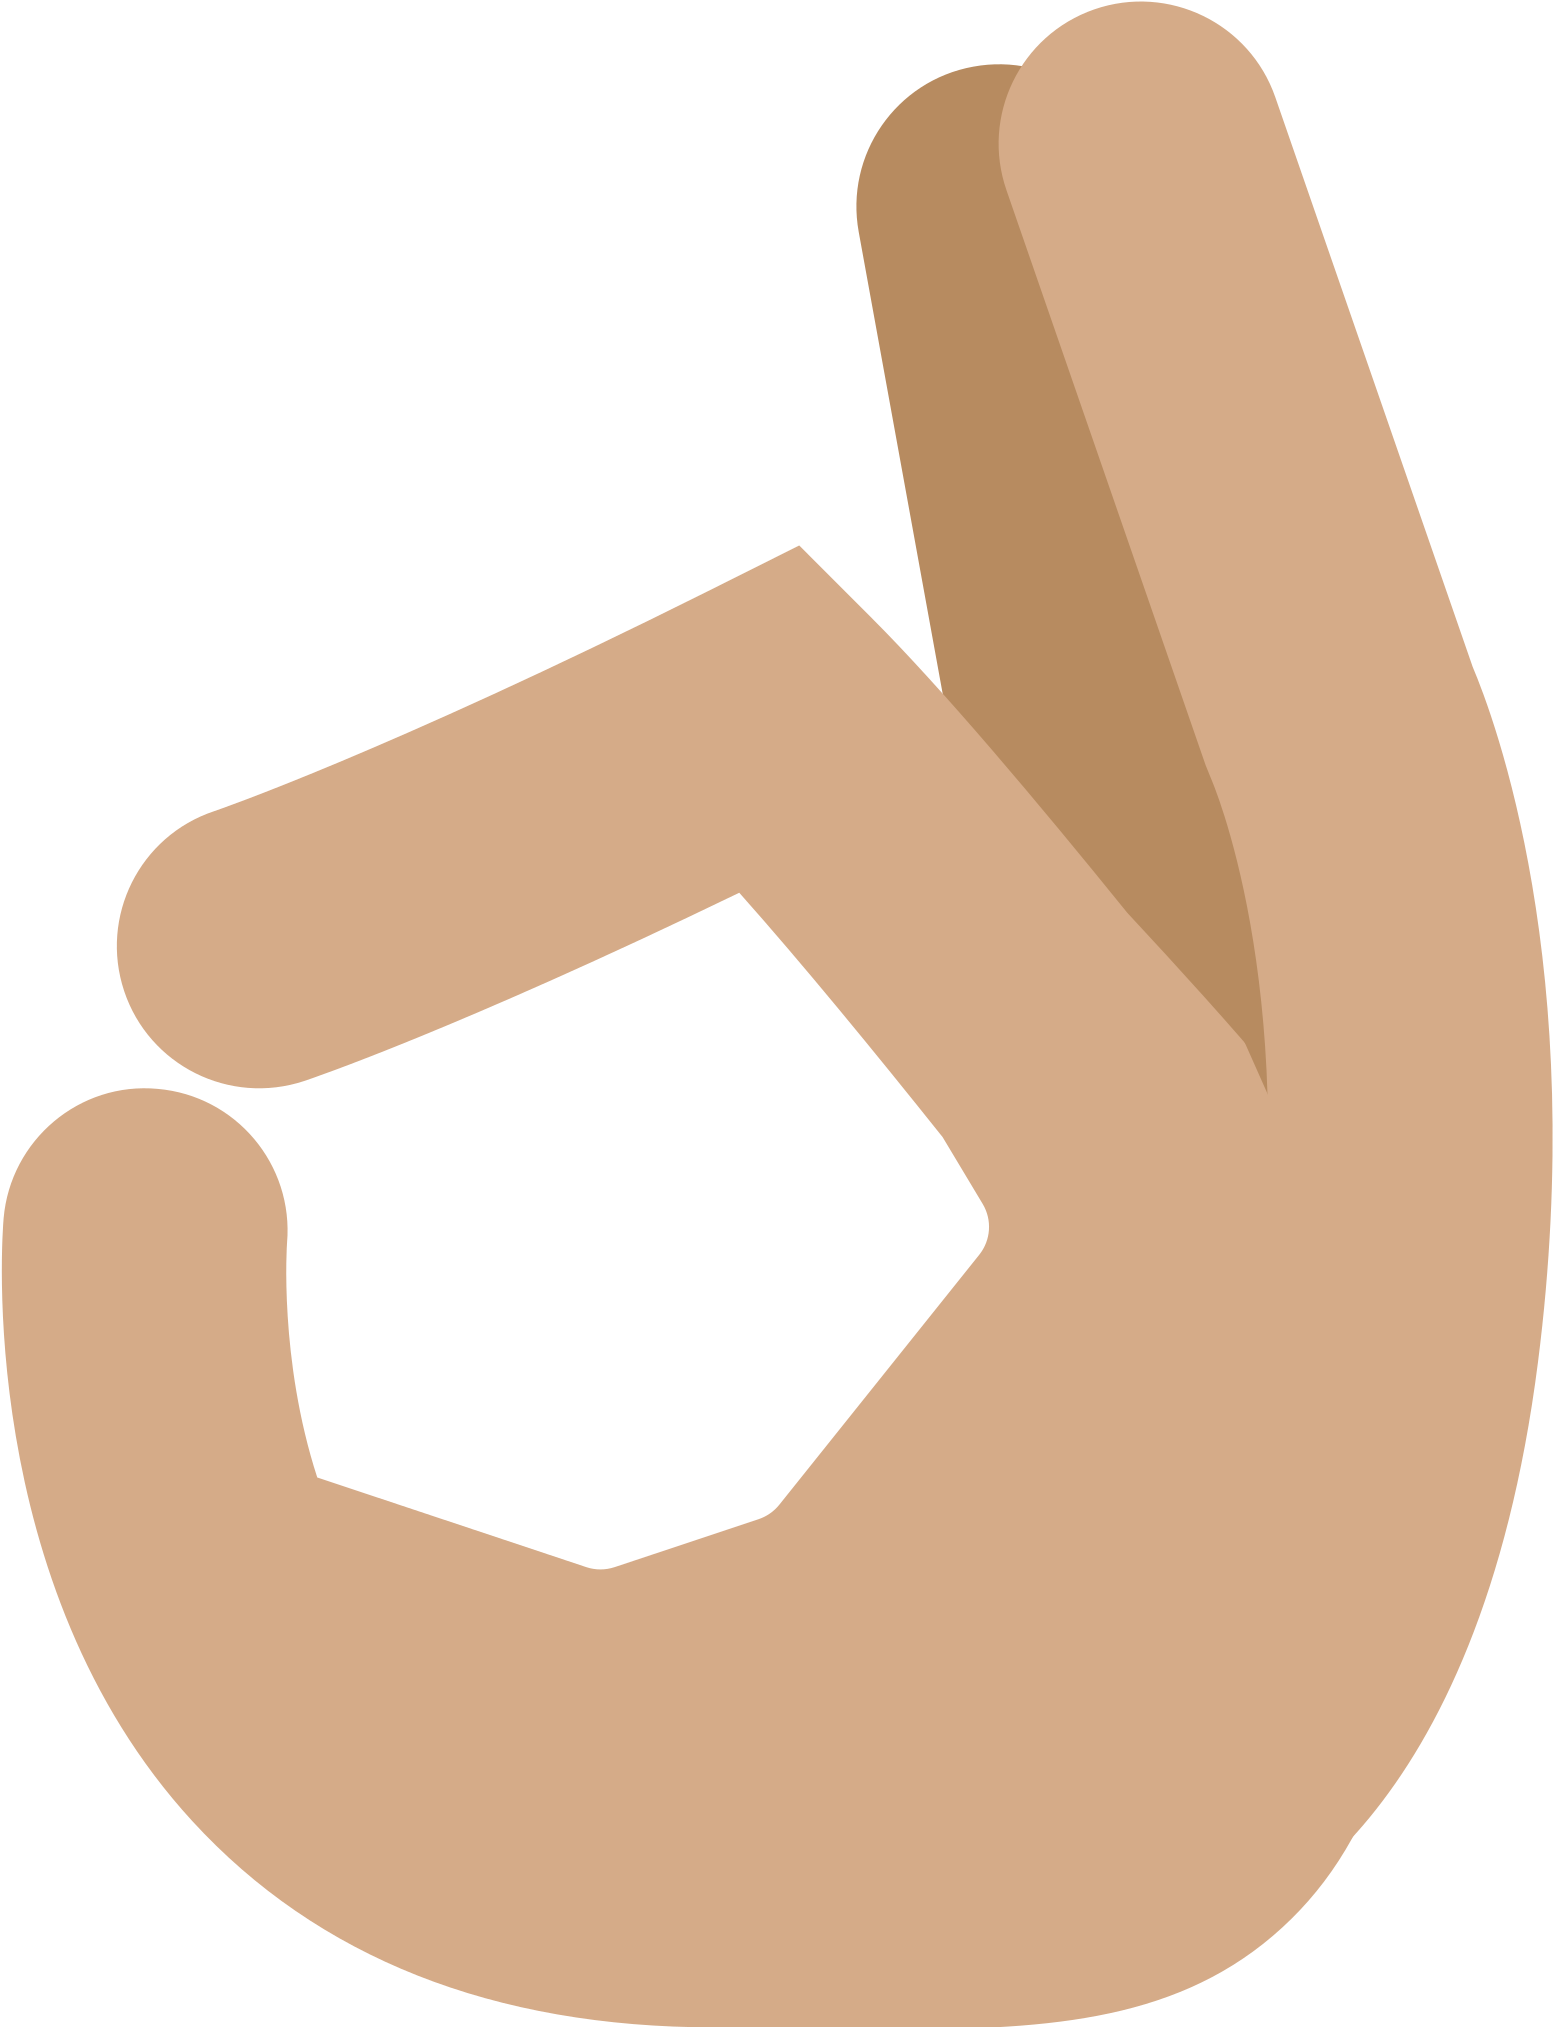 Download Ok Hand Sign Ok Hand Emoji Twitter Png Image With No Background Pngkey Com Browse and download hd ok emoji png images with transparent background for free. ok hand emoji twitter png image with no